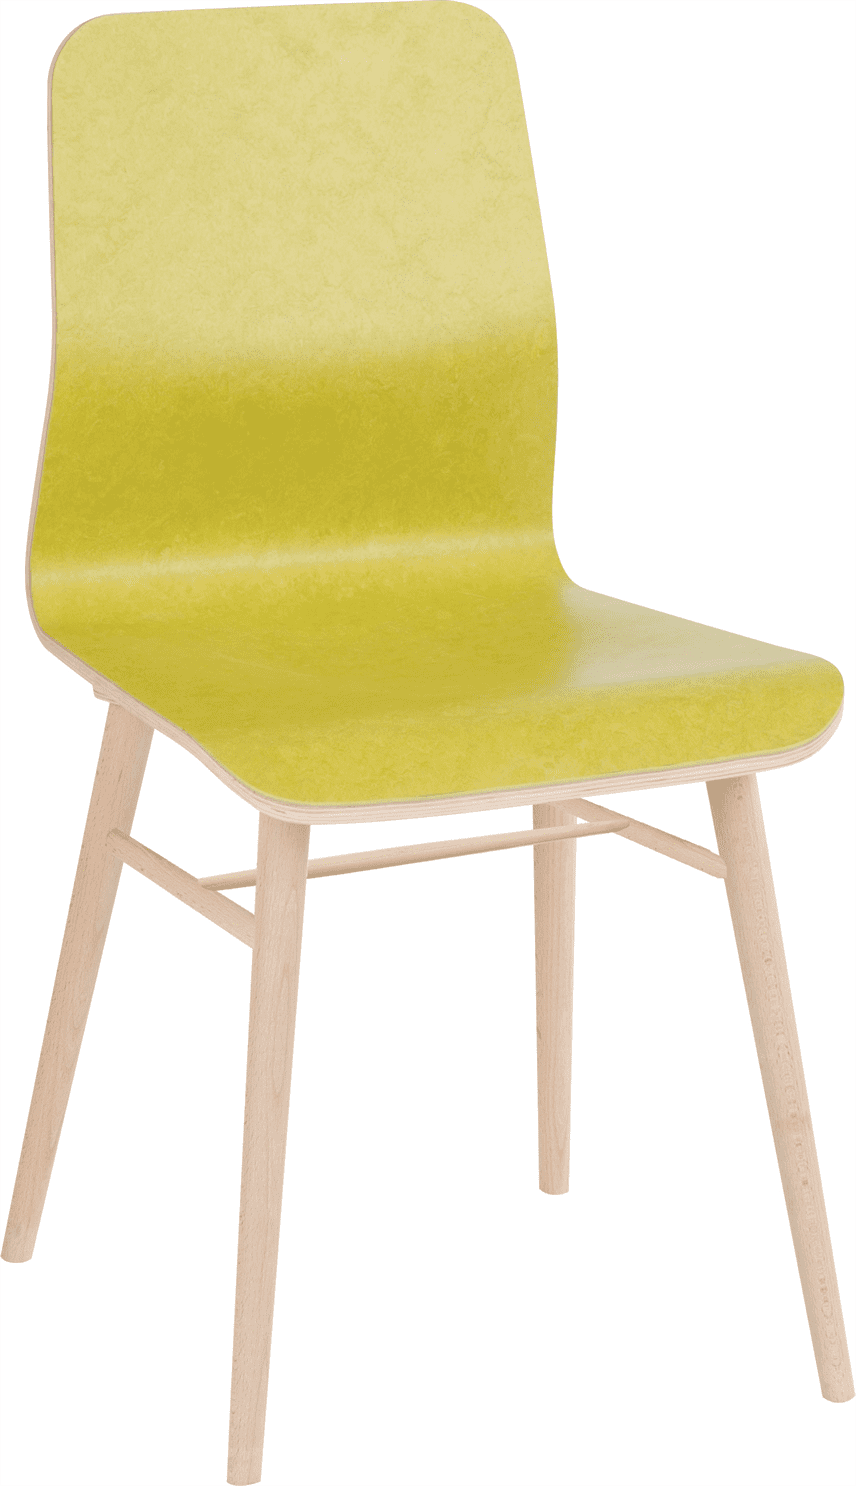 Lexi side chair veneer shell raw